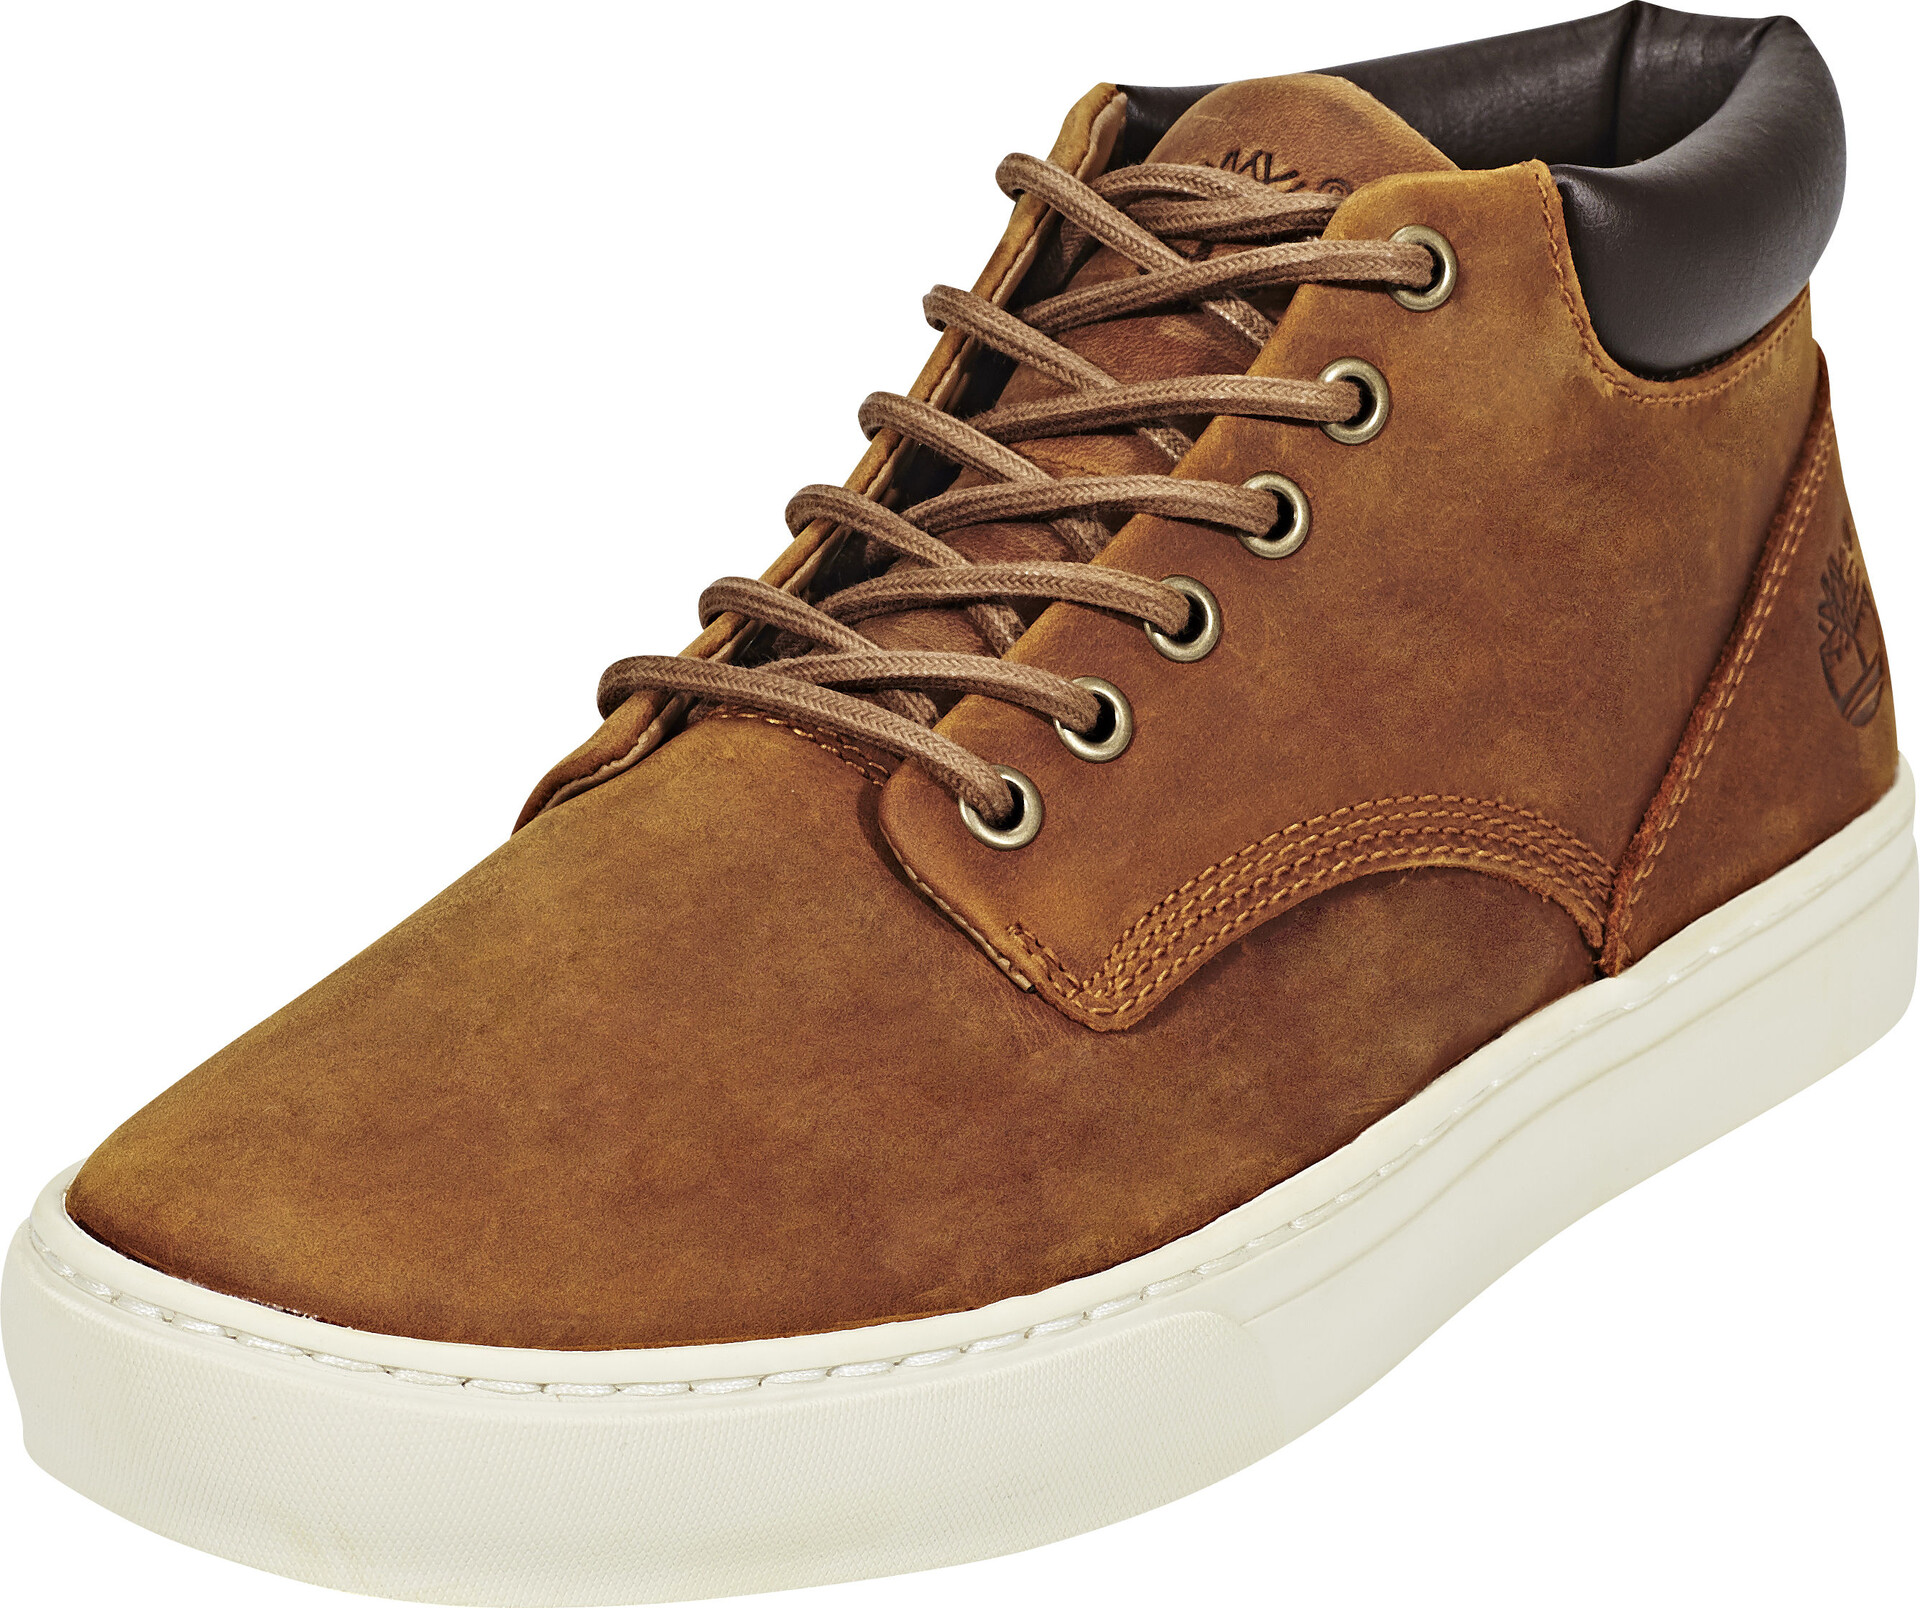 Timberland Adventure 2.0 Cupsole Chukka Chaussures Homme, glazed ginger roughcut